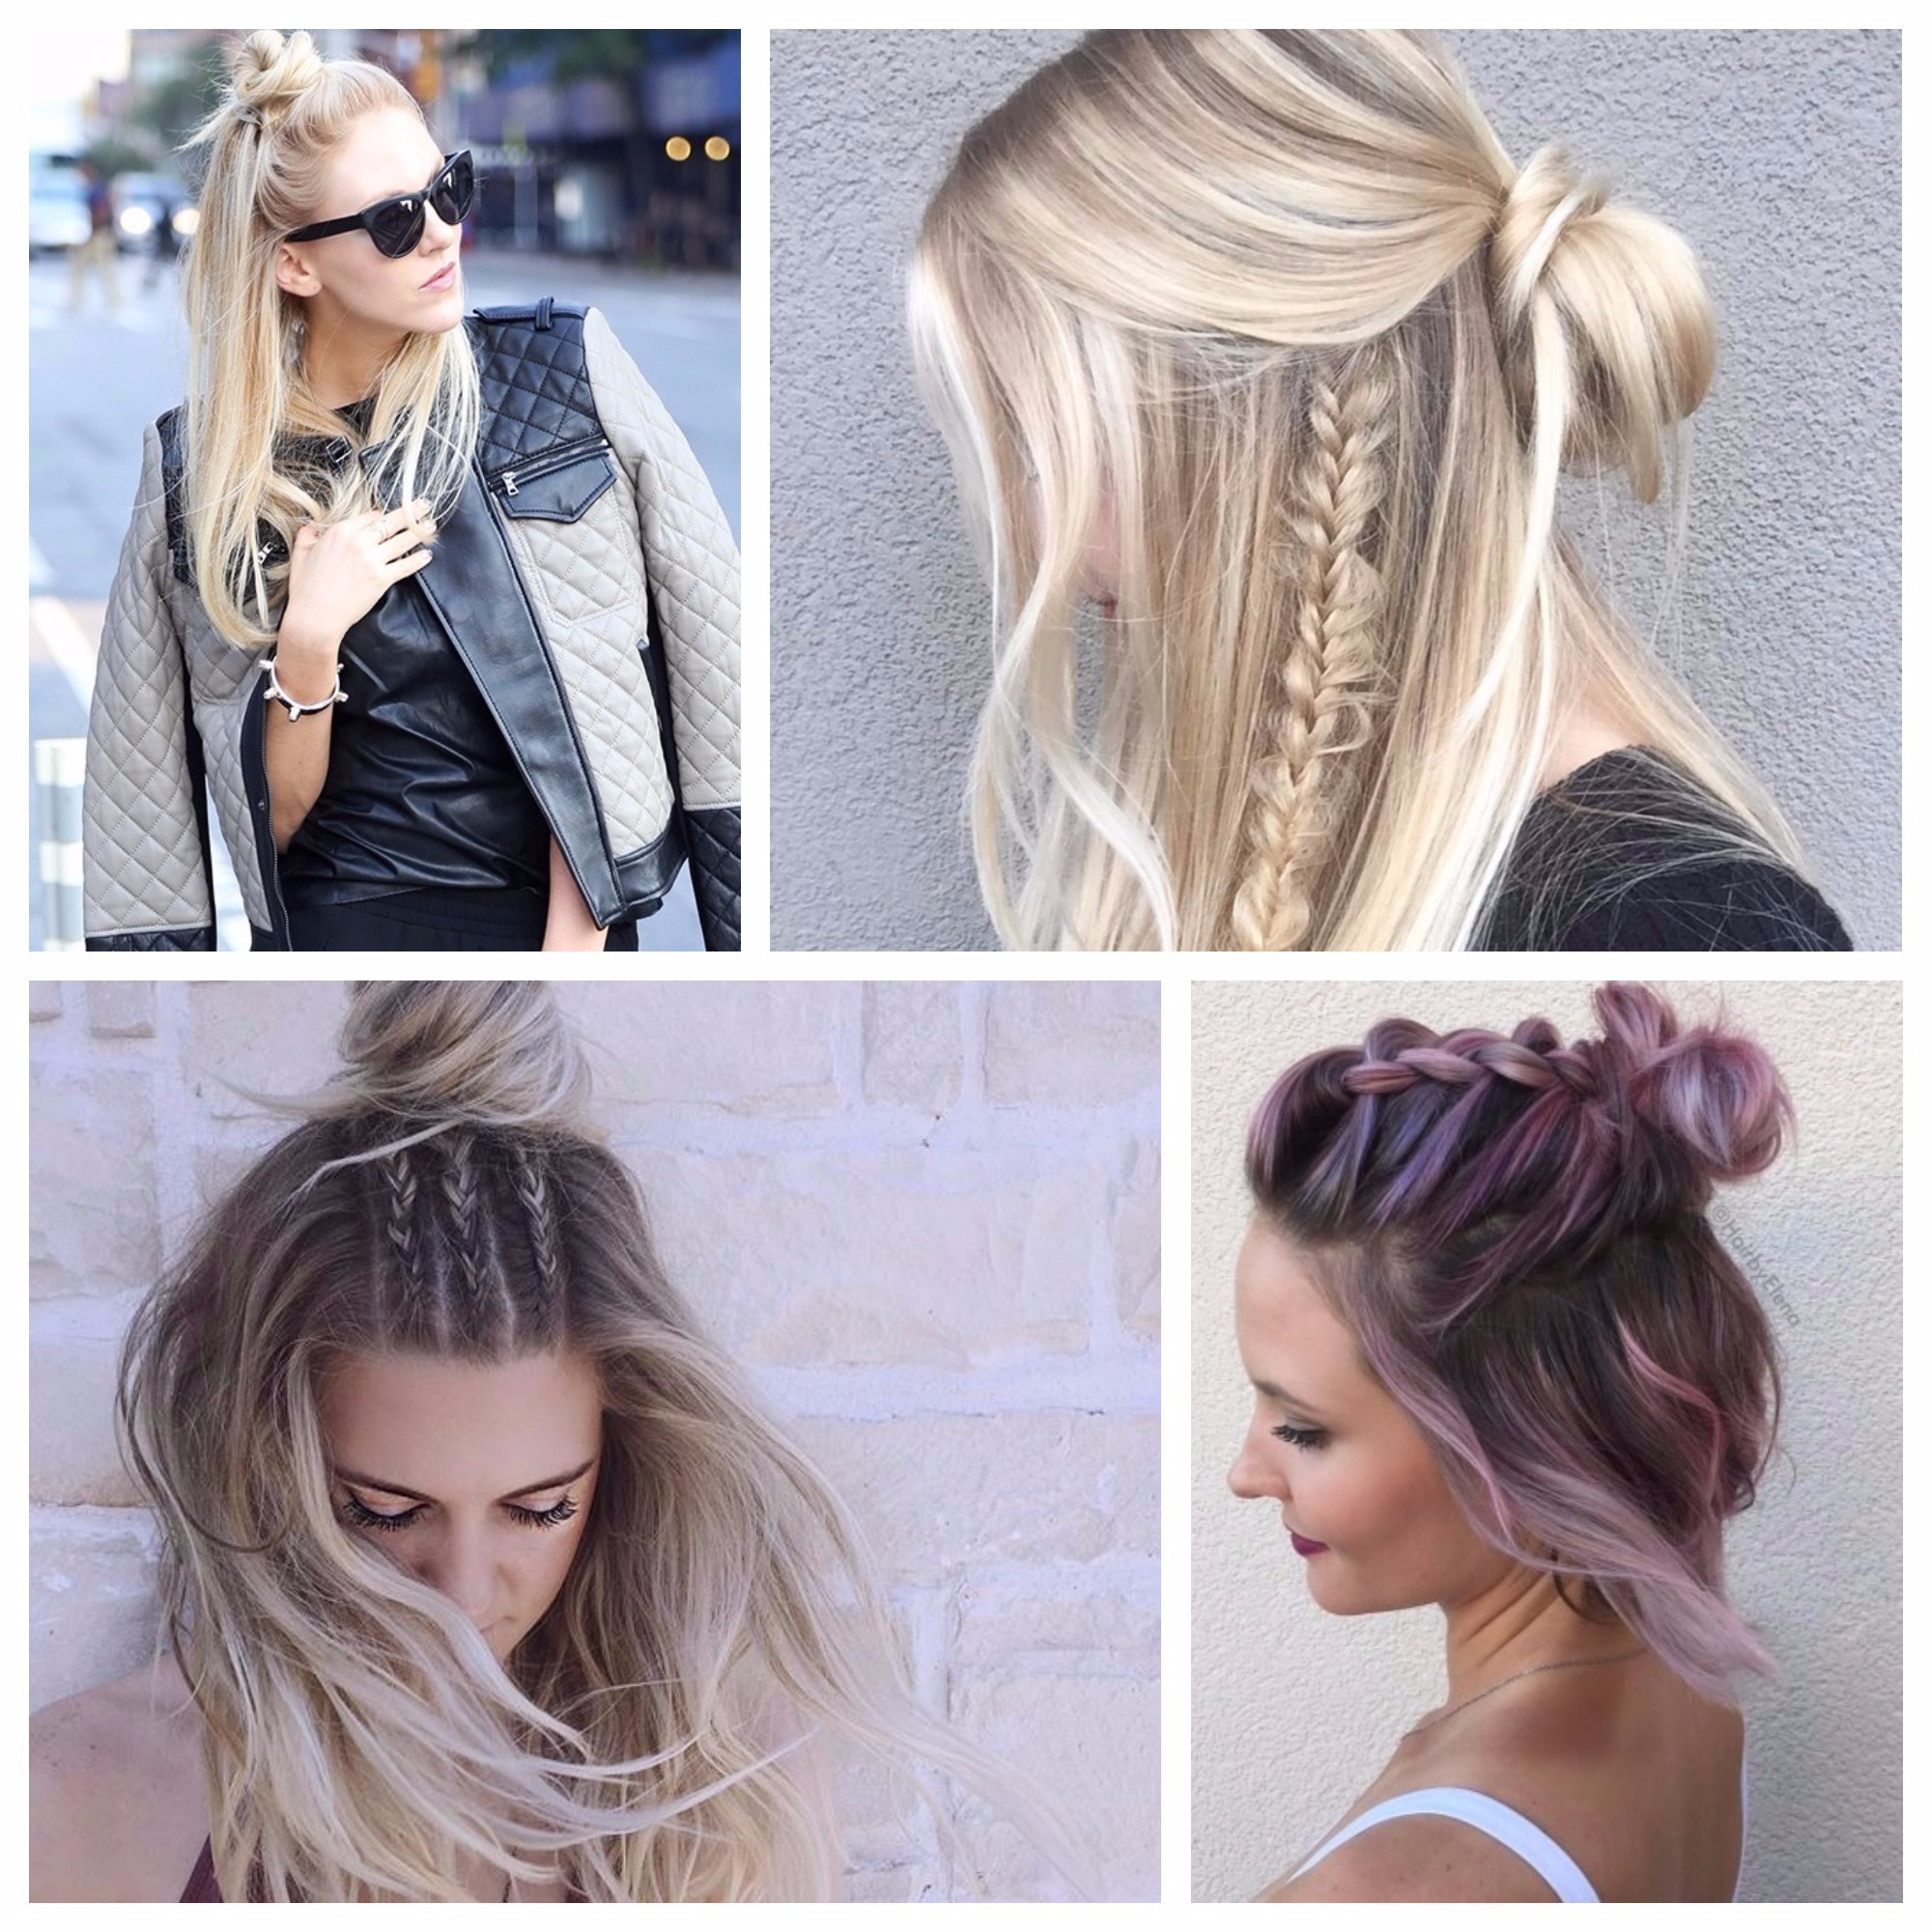 New Ways for Styling Half Up Half Down Hairstyles  11 Haircuts